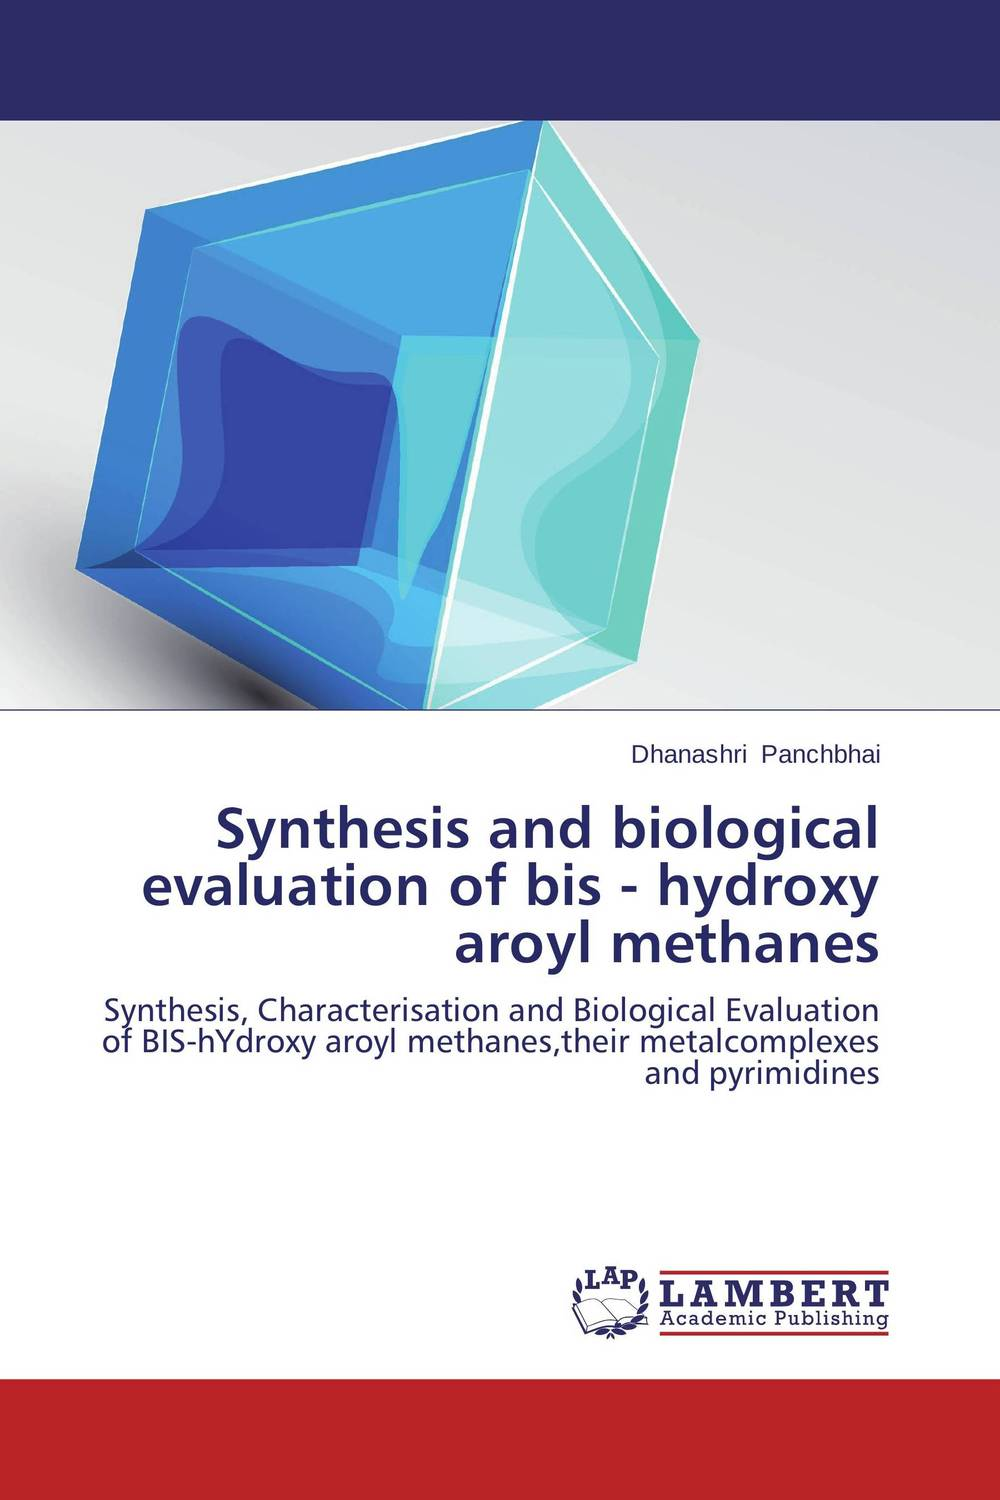 Synthesis and biological evaluation of bis - hydroxy aroyl methanes